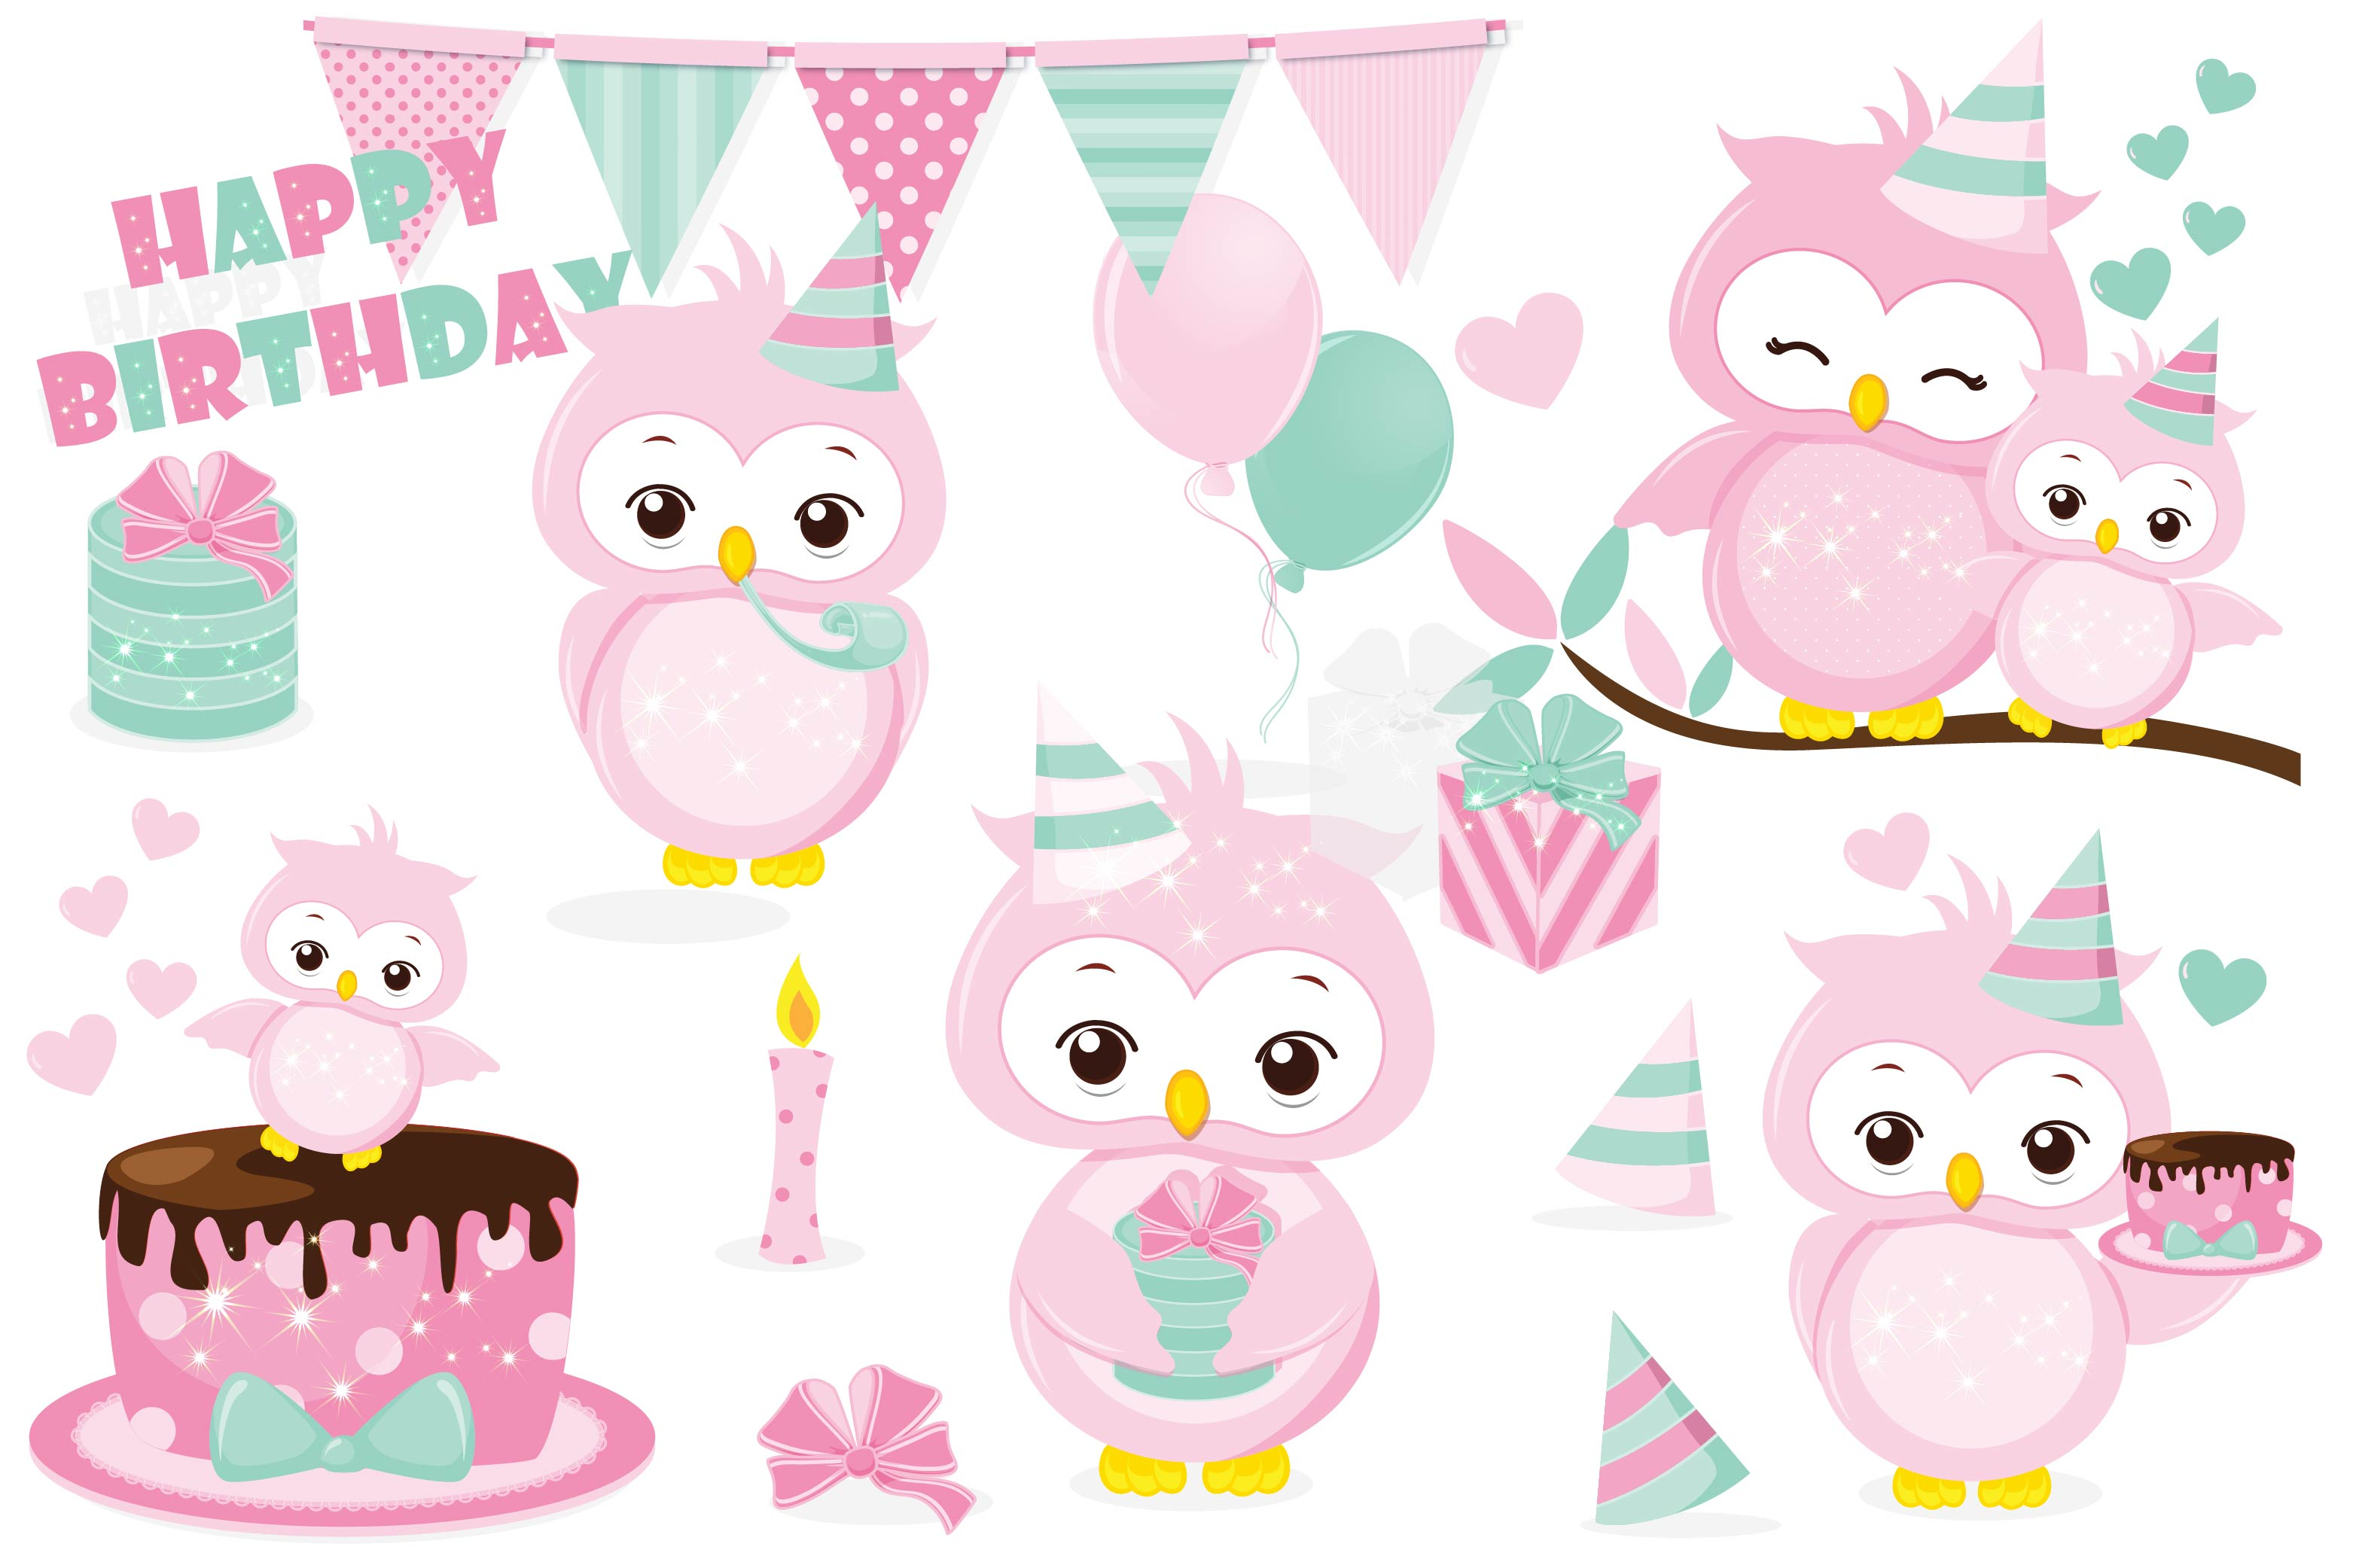 Birthday owls clipart jpg freeuse library Birthday owl clipart, Birthday owl graphics jpg freeuse library